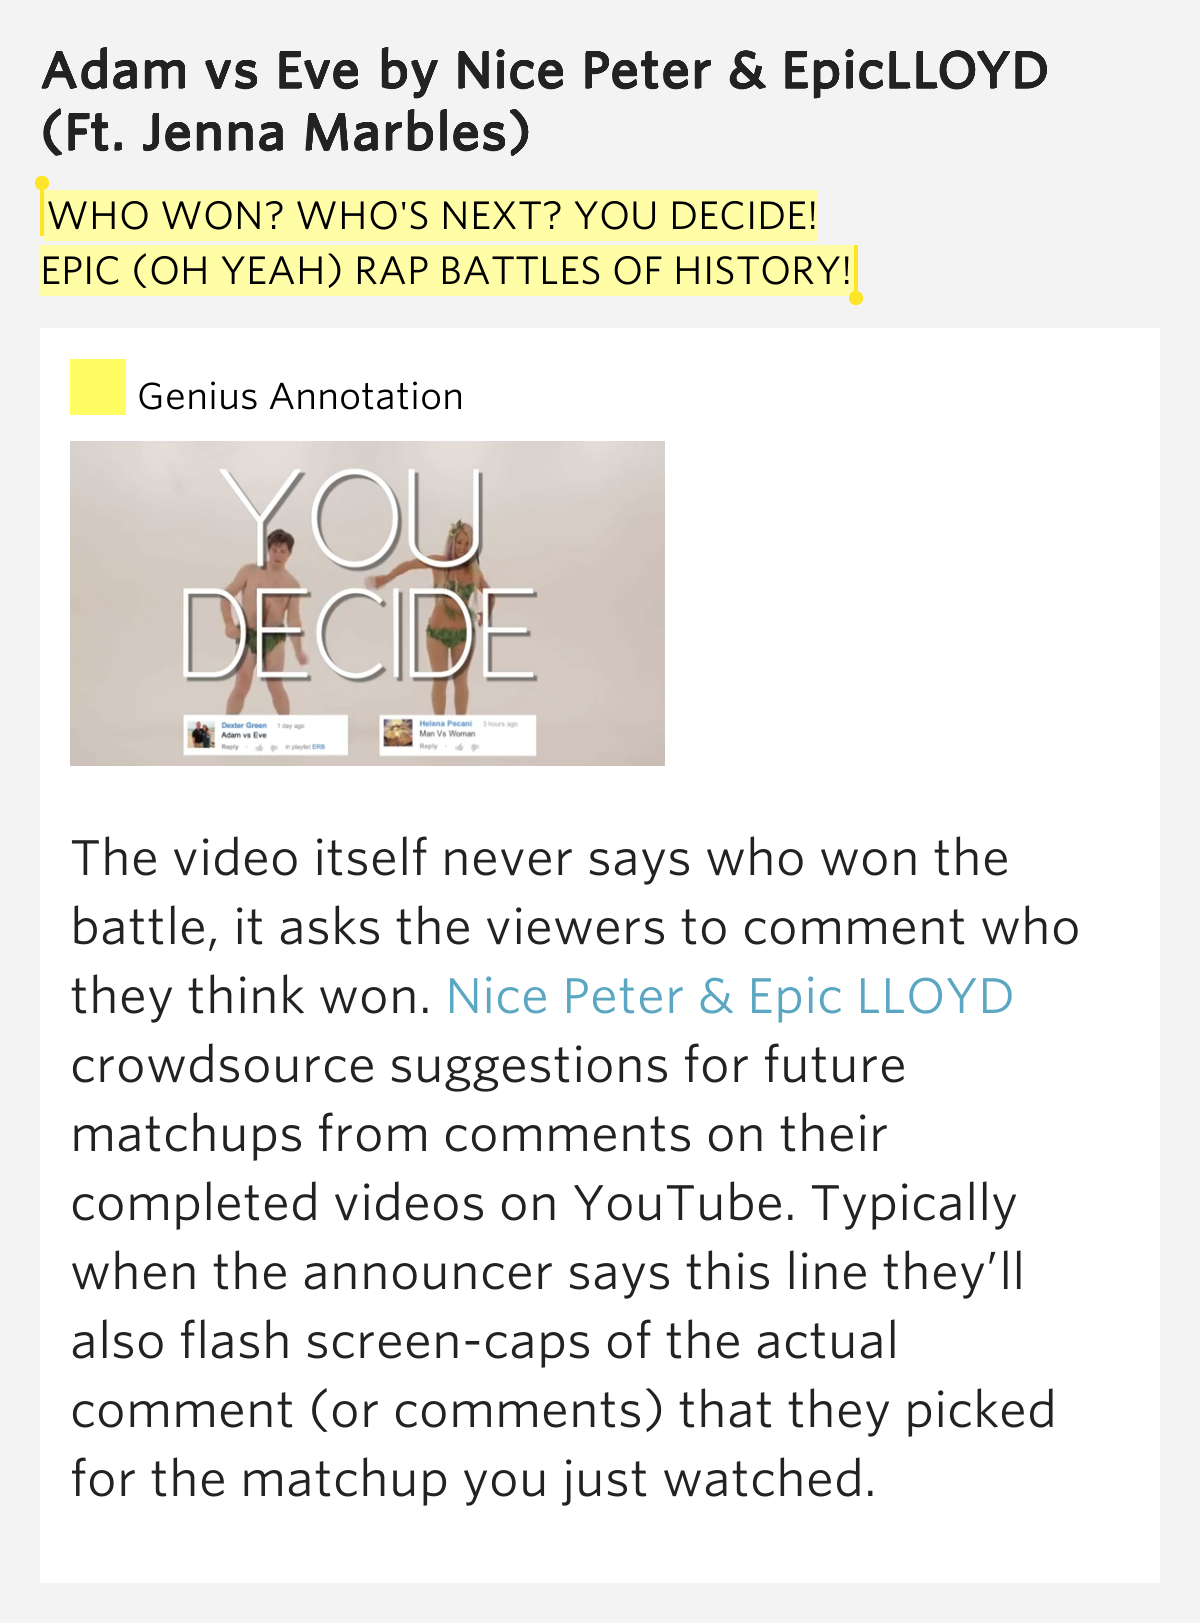 Epic rap battles of history Adam vs Eve lyrics - YouTube